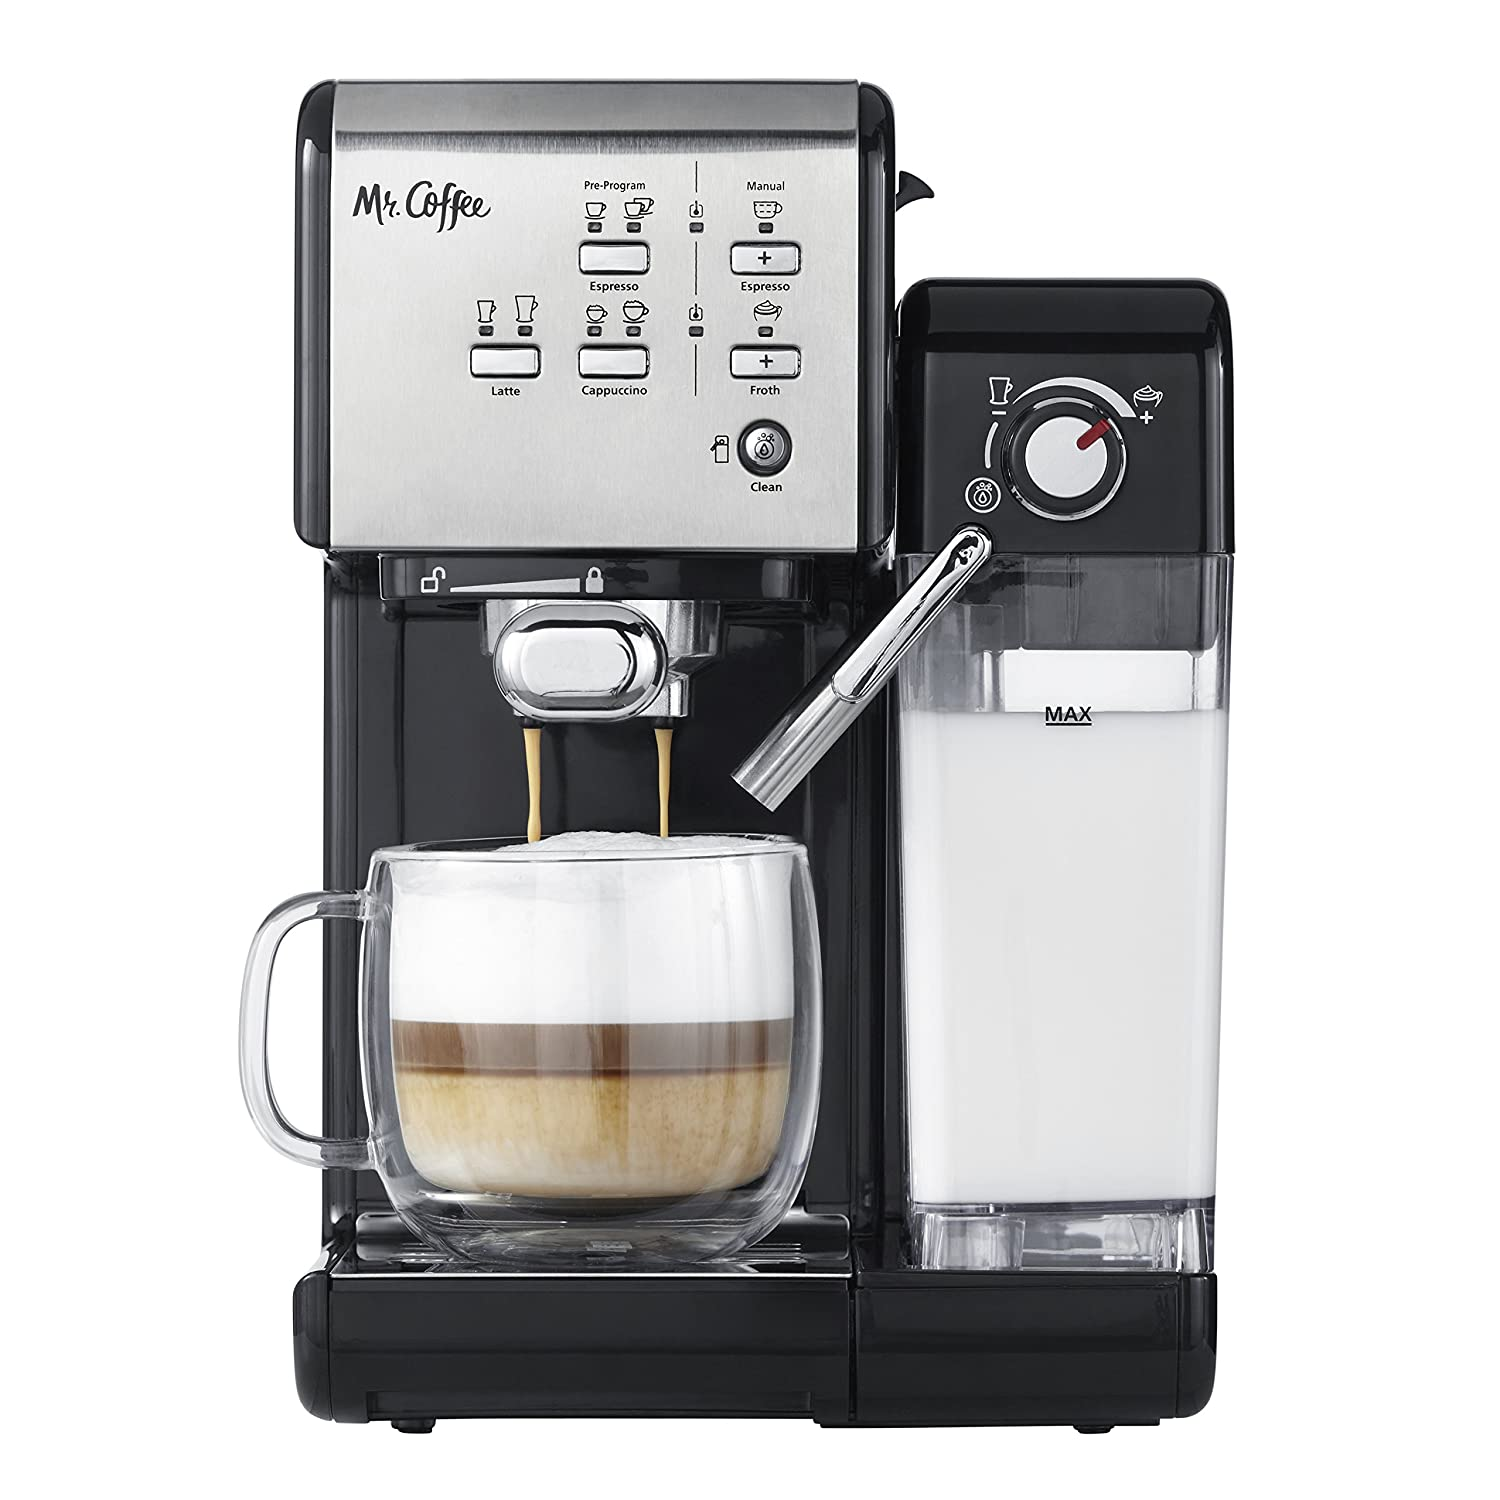 Top 10 Best Mr. Coffee Coffee Makers